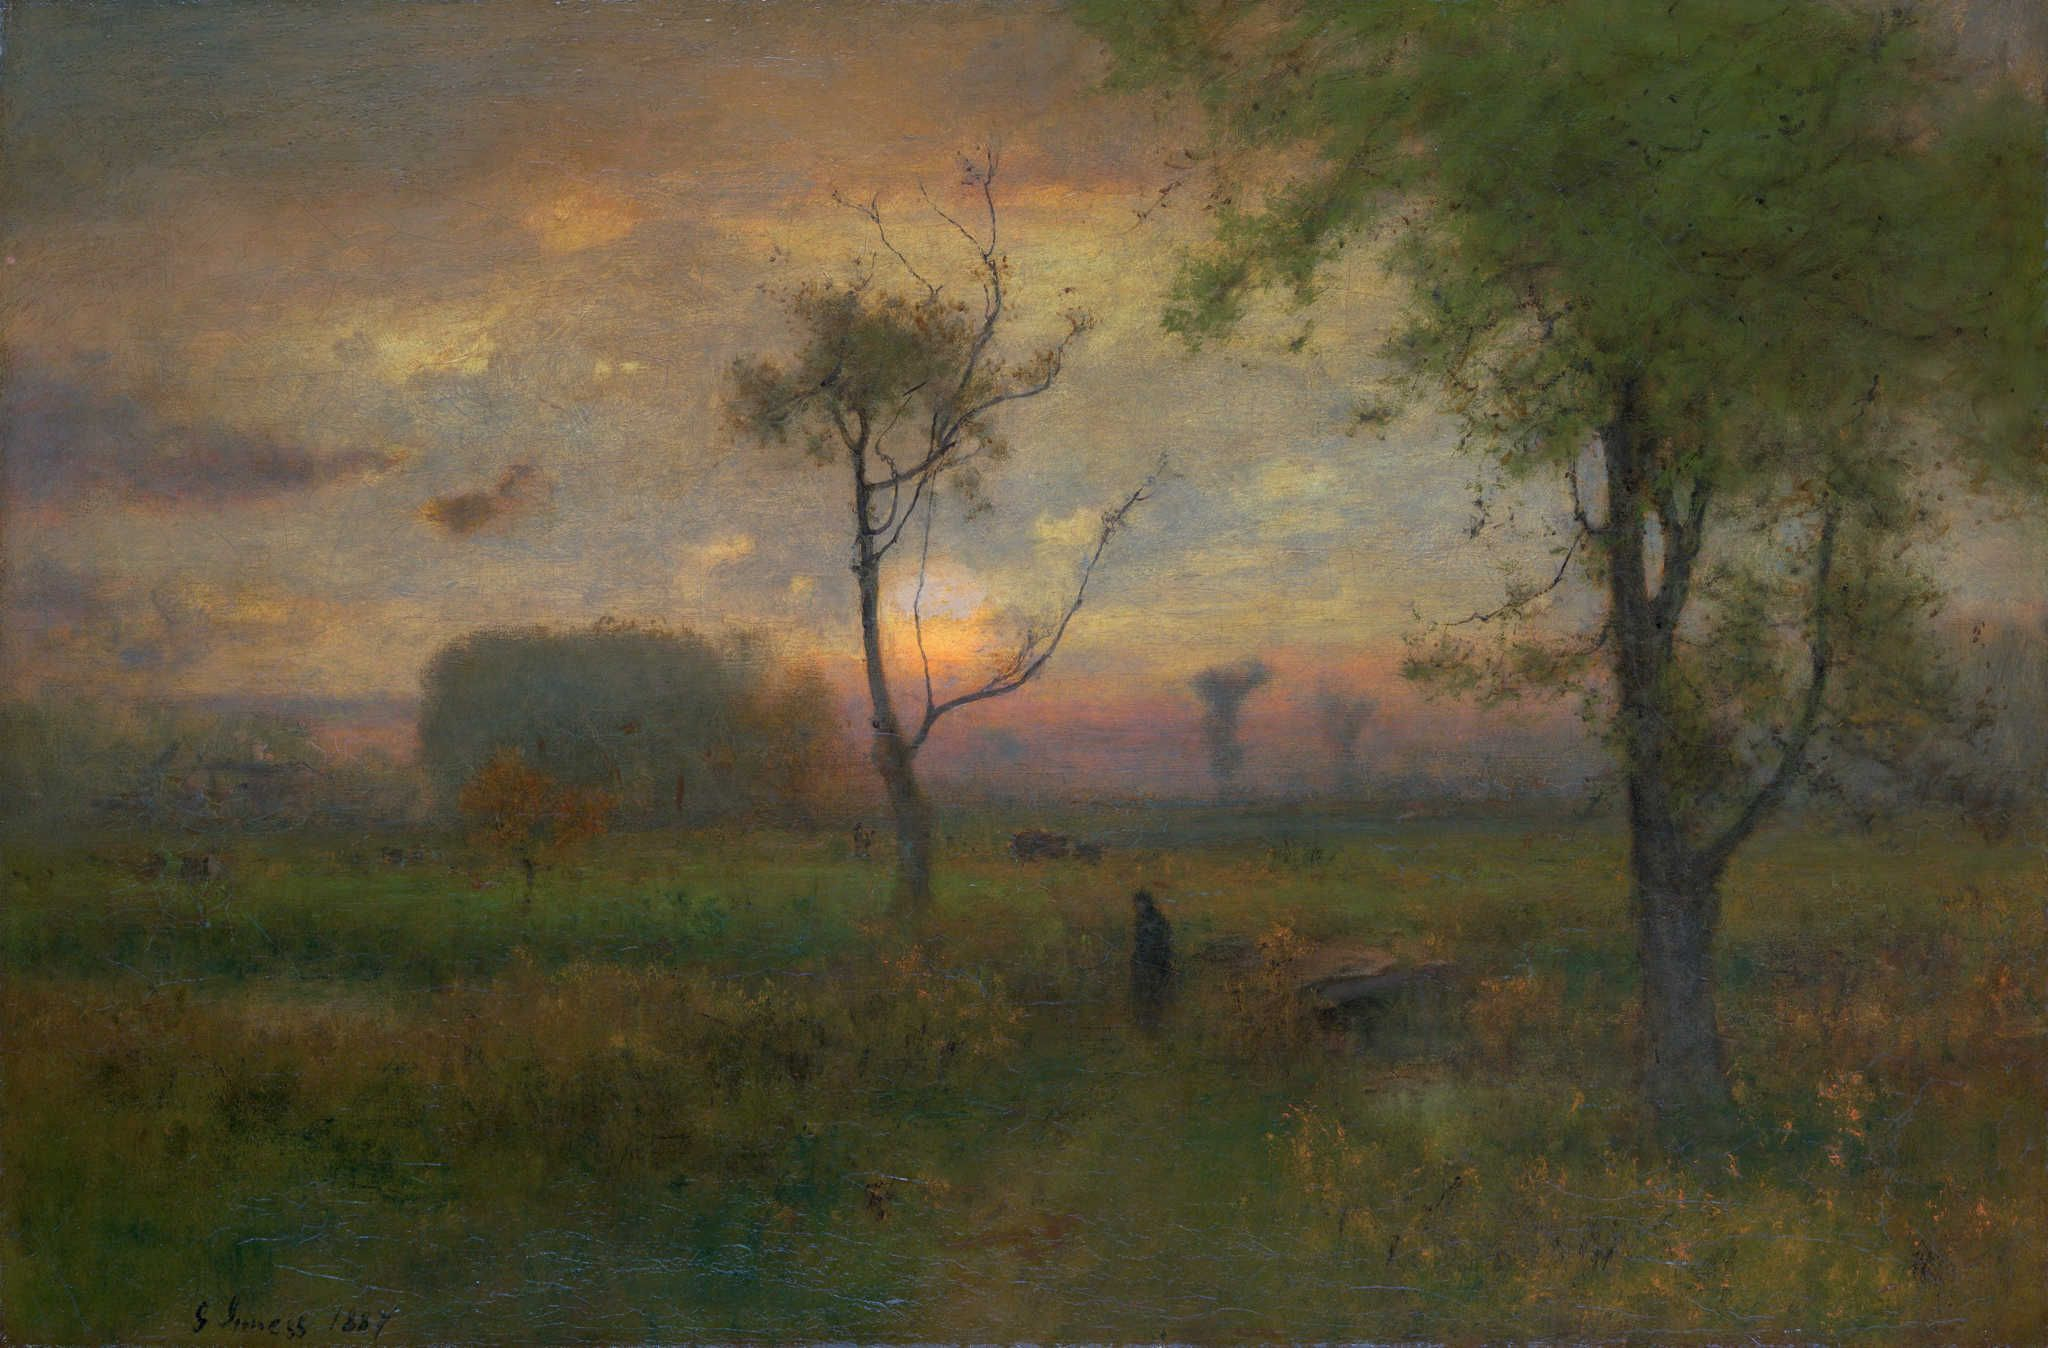 George Inness Paintings Gallery Discover Learn Print Share And Enjoy The Most Famous Painting Metropolitan Museum Of Art Painting Gallery Landscape Artist